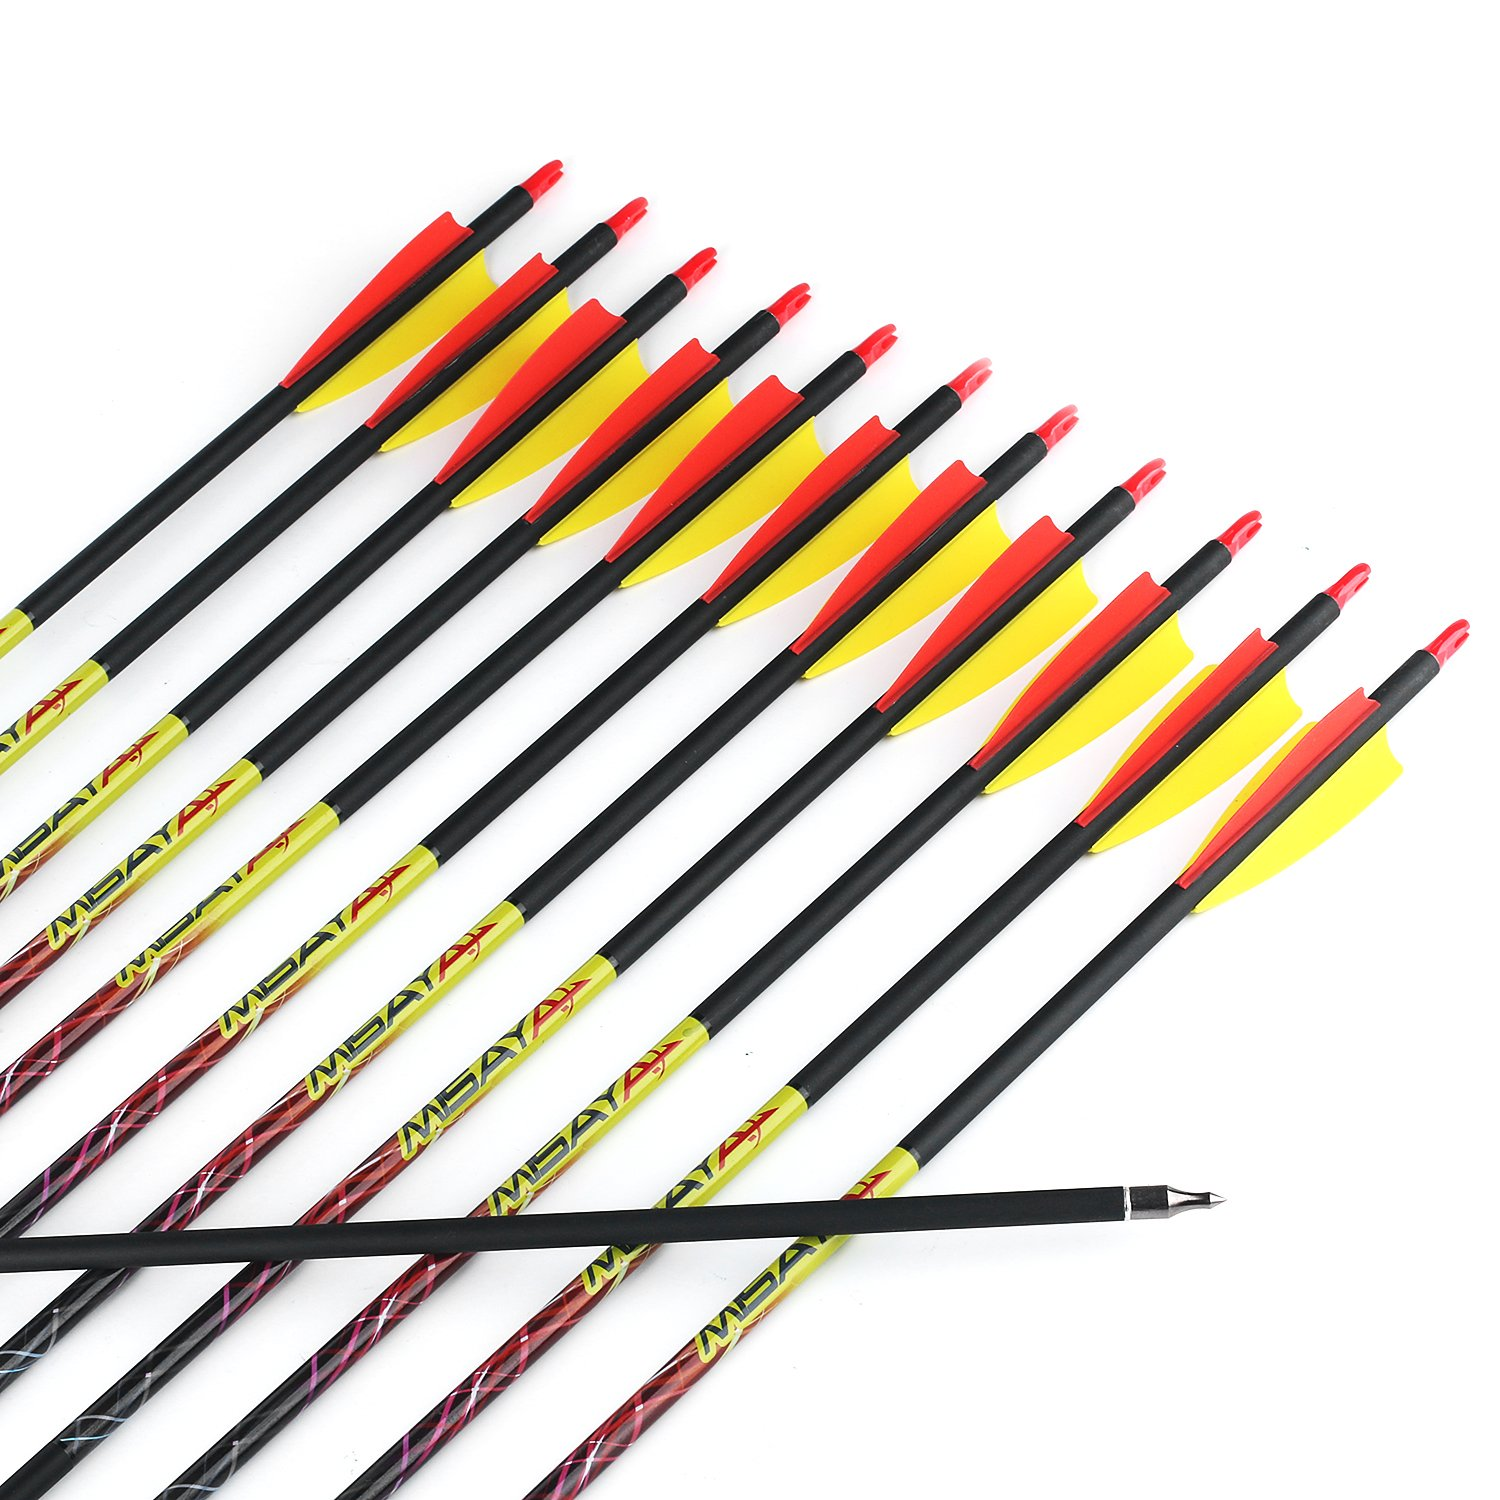 Amazon.com: Hunting Arrows - Arrows & Shafts: Sports & Outdoors